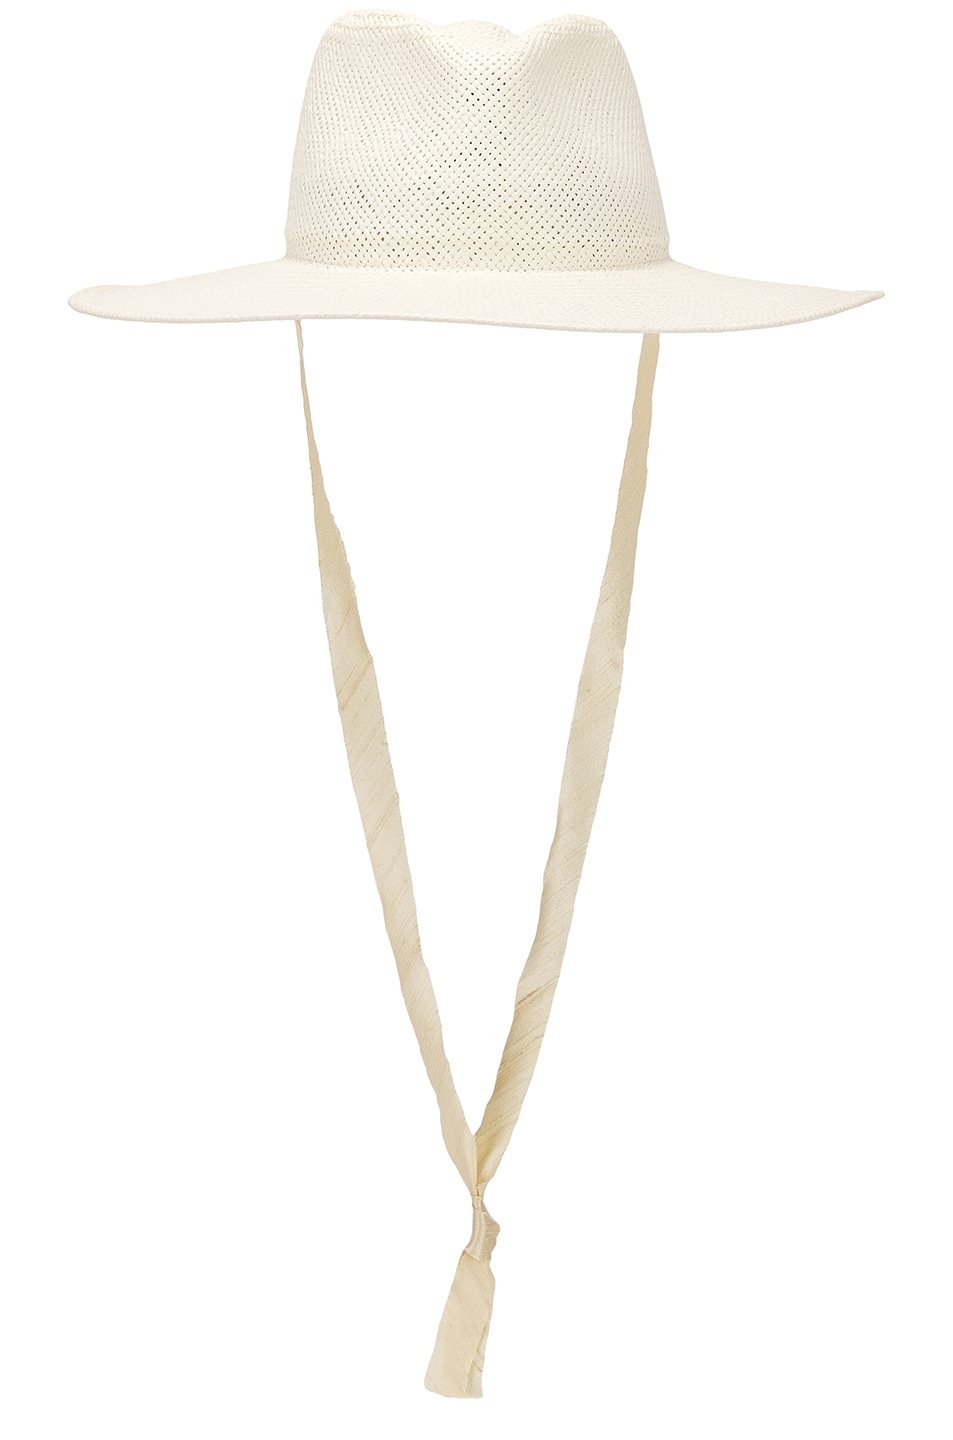 Janessa Leone Hats JANESSA LEONE CEZANNE PACKABLE HAT IN NEUTRAL,WHITE